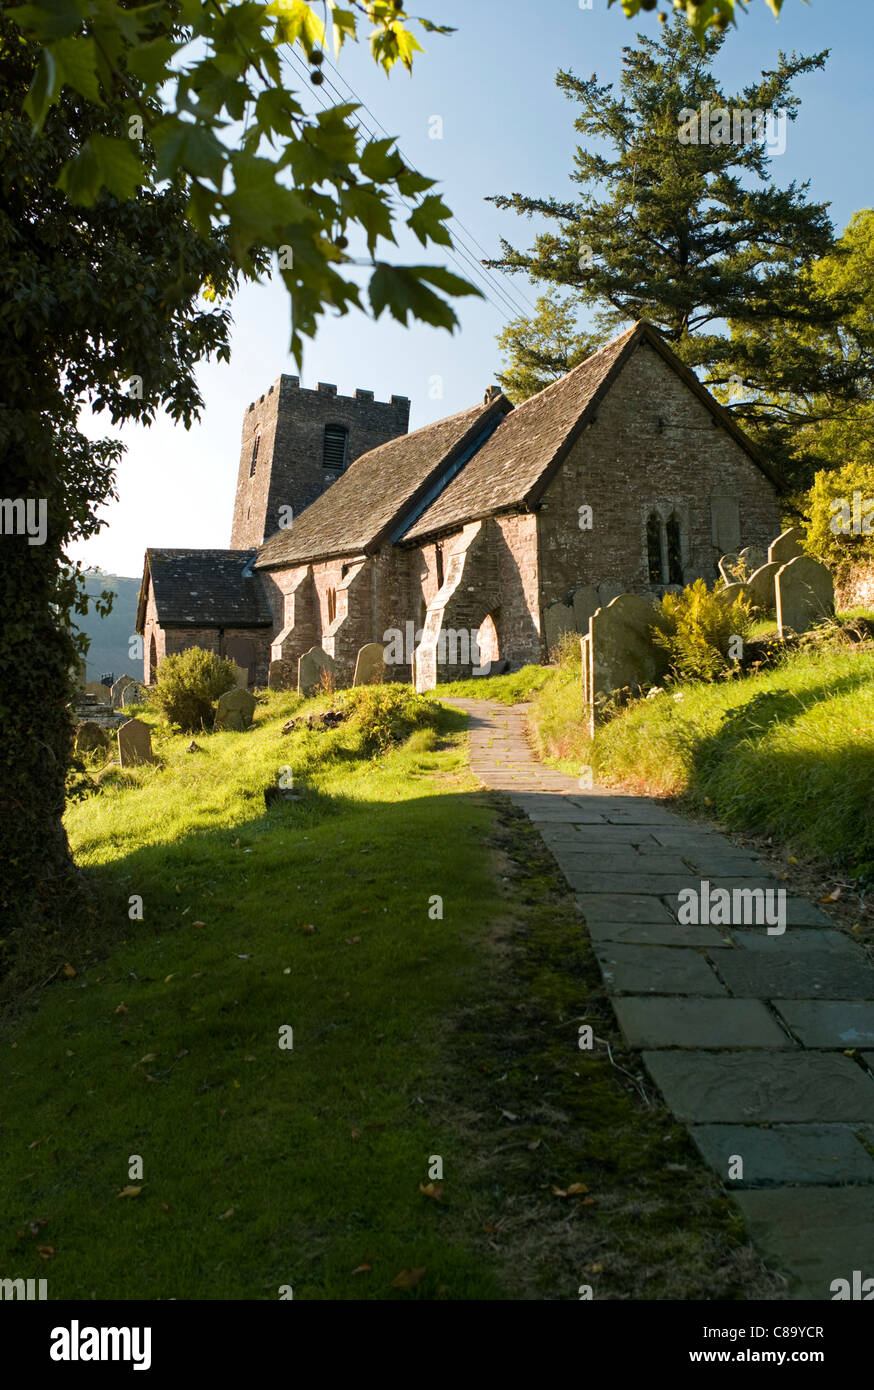 St Martin's church, Cwmyoy, Monmouthshire, Wales UK. - Stock Image